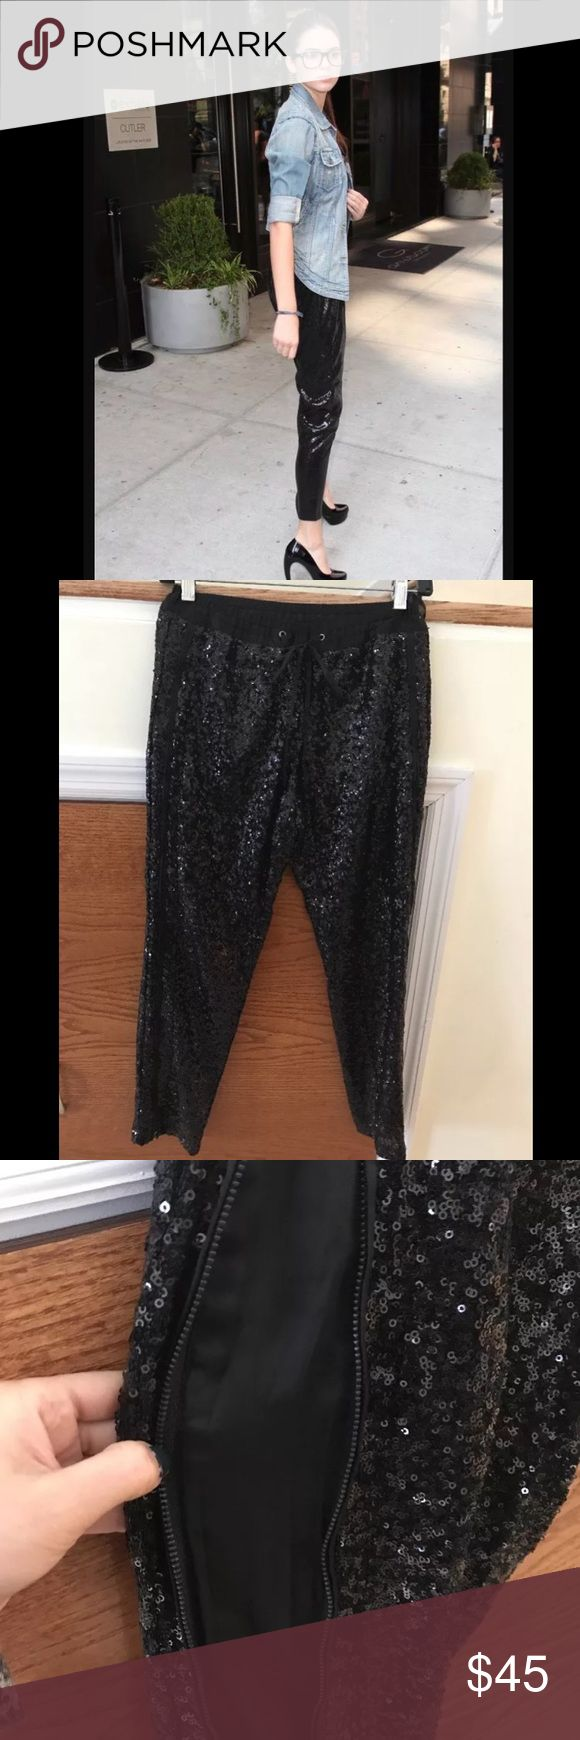 Black Sequin Pants Small, Kendall Jenner Black sequin pants  elastic waist  new without tags size zipper  fully lined  size small  Measurements (approximately) waist (stretch) 30 inches inseam 25.5 inches Total length 35 inches Own this look just like Kendall Jenner. Sequin is. Wry much in Trend now. Returns are accepted.Money will be refunded after merchandise is returned. Buyer pays return shipping cost. Feel free to ask any questions before purchasing . Please check out my other items I…